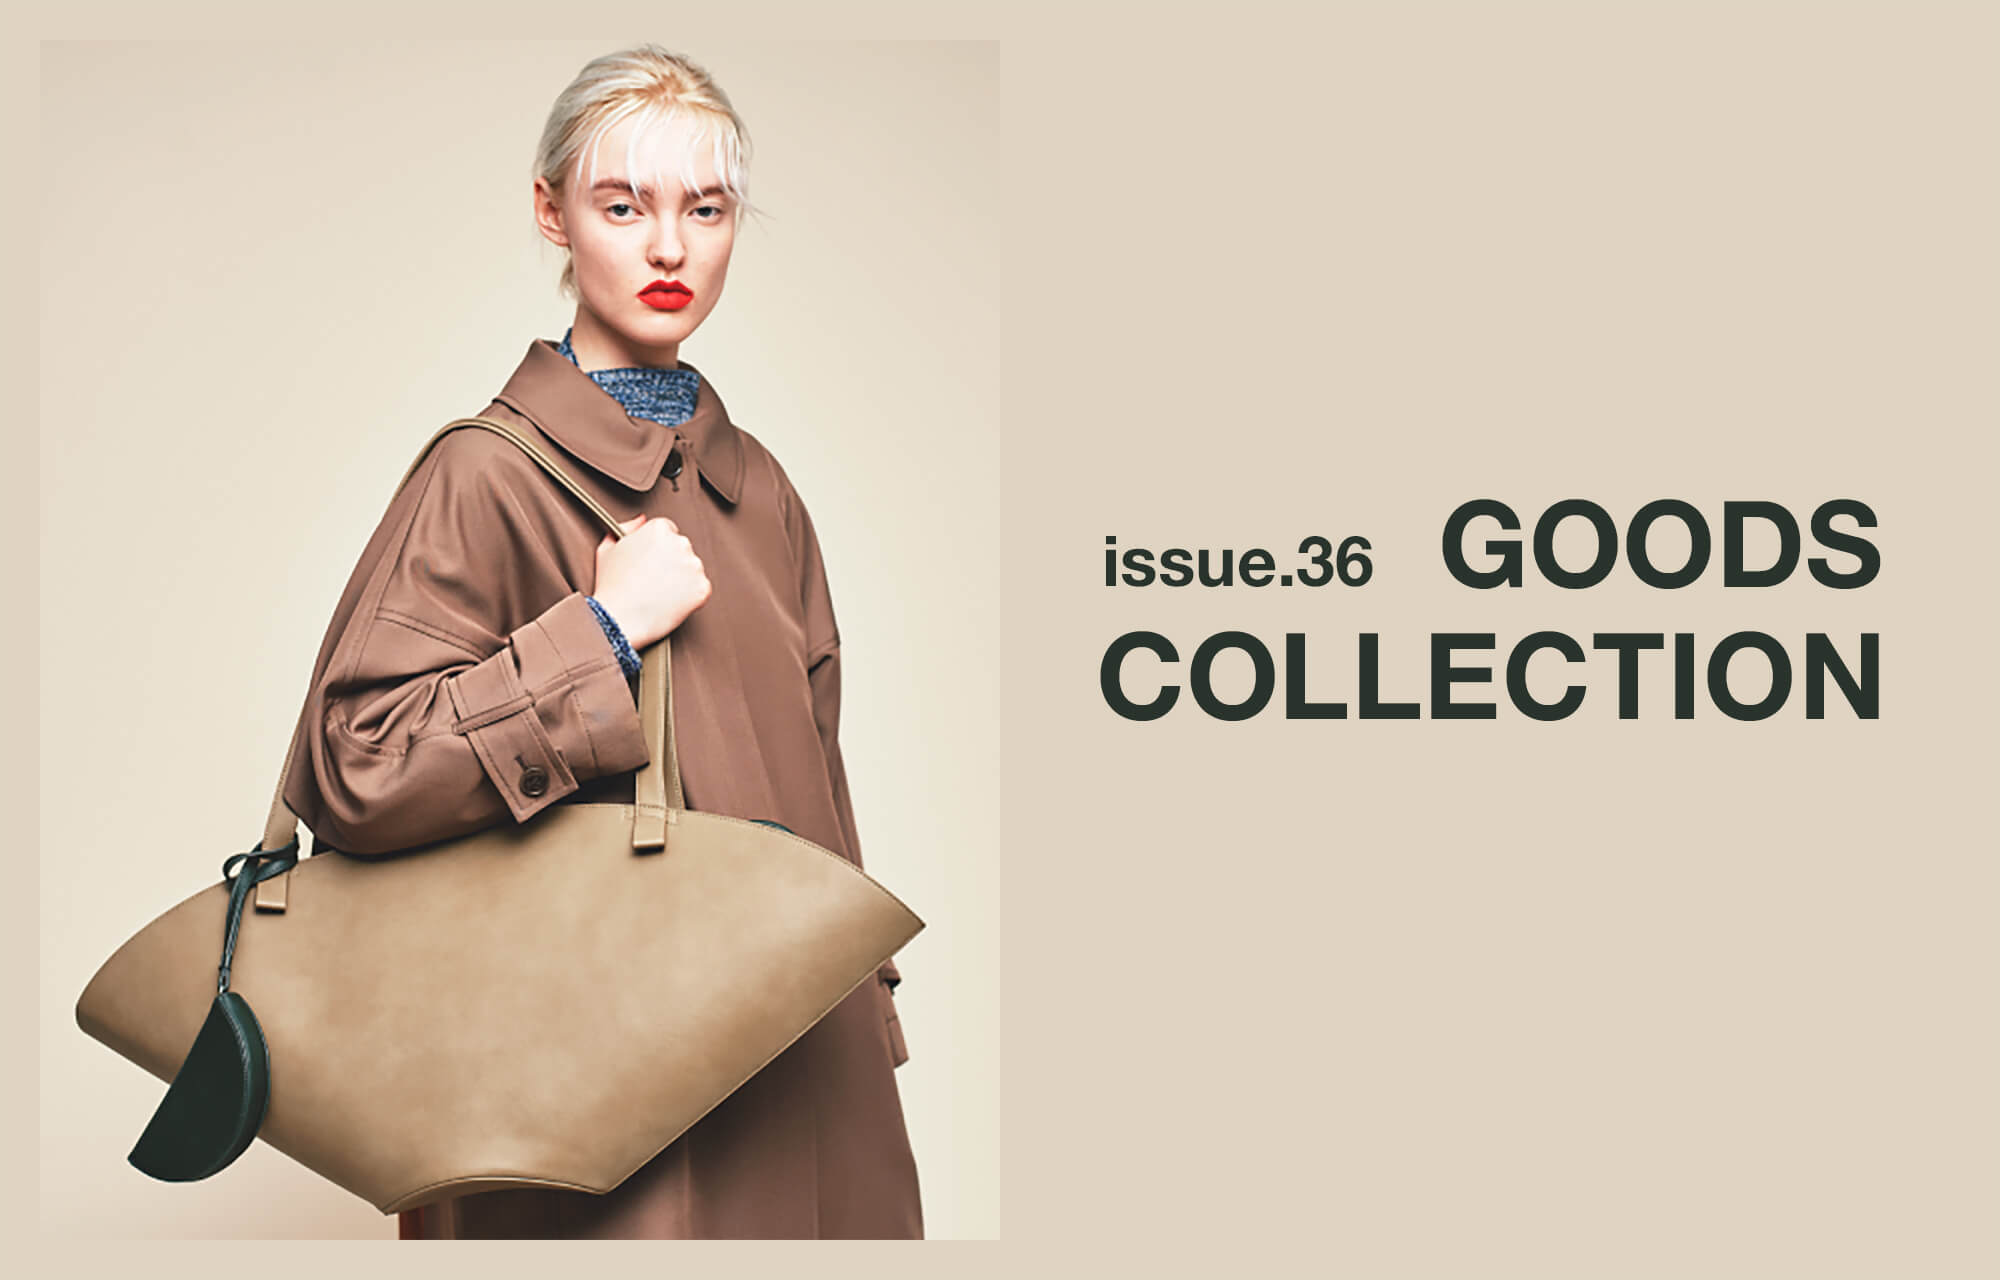 ISSUE.36 GOODS COLLECTION